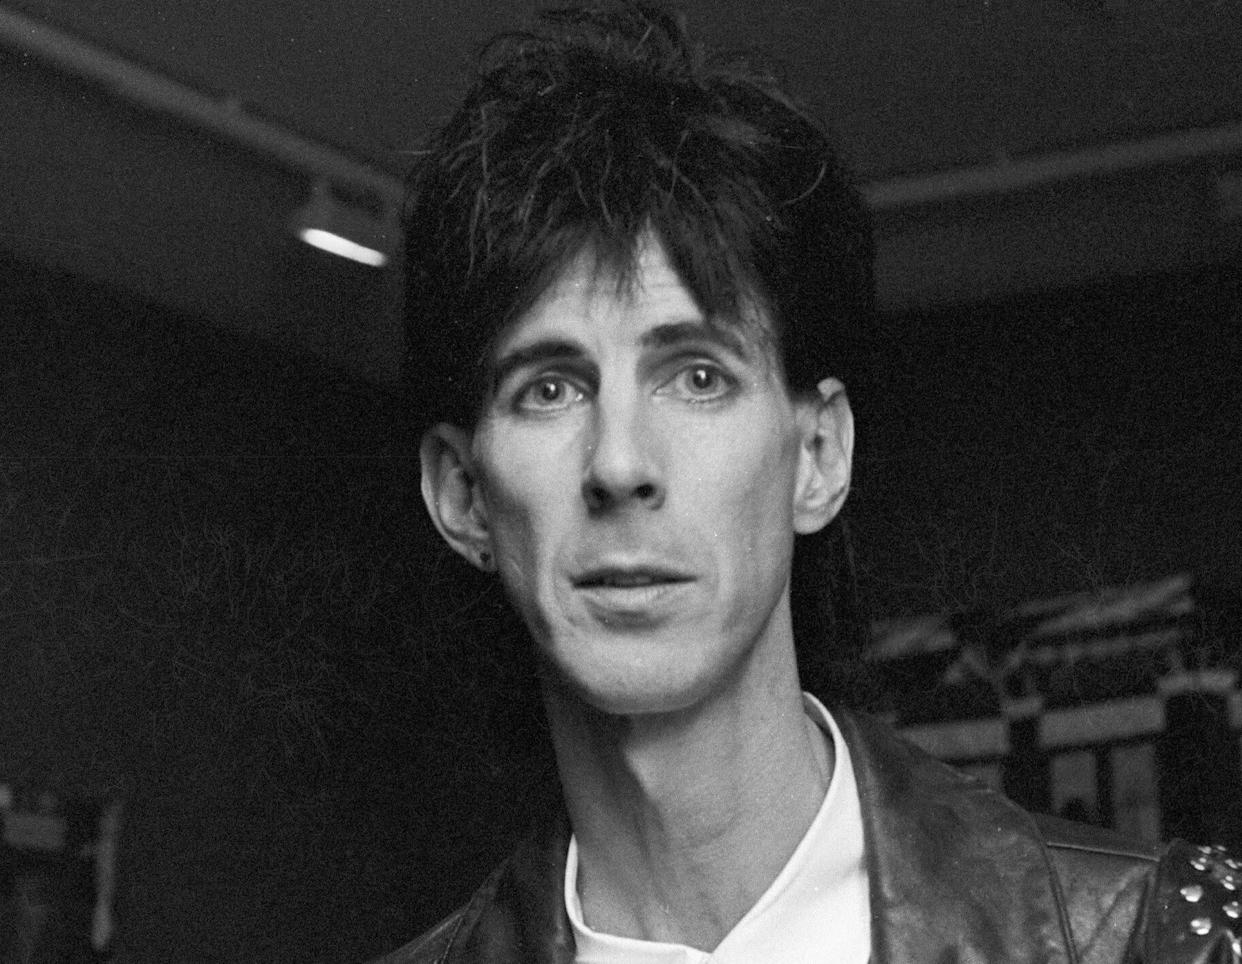 Singer/songwriter Ric Ocasek, who was inducted into the Rock and Roll Hall of Fame as a member of the new wave band The Cars, died on September 15, 2019. He was 75.